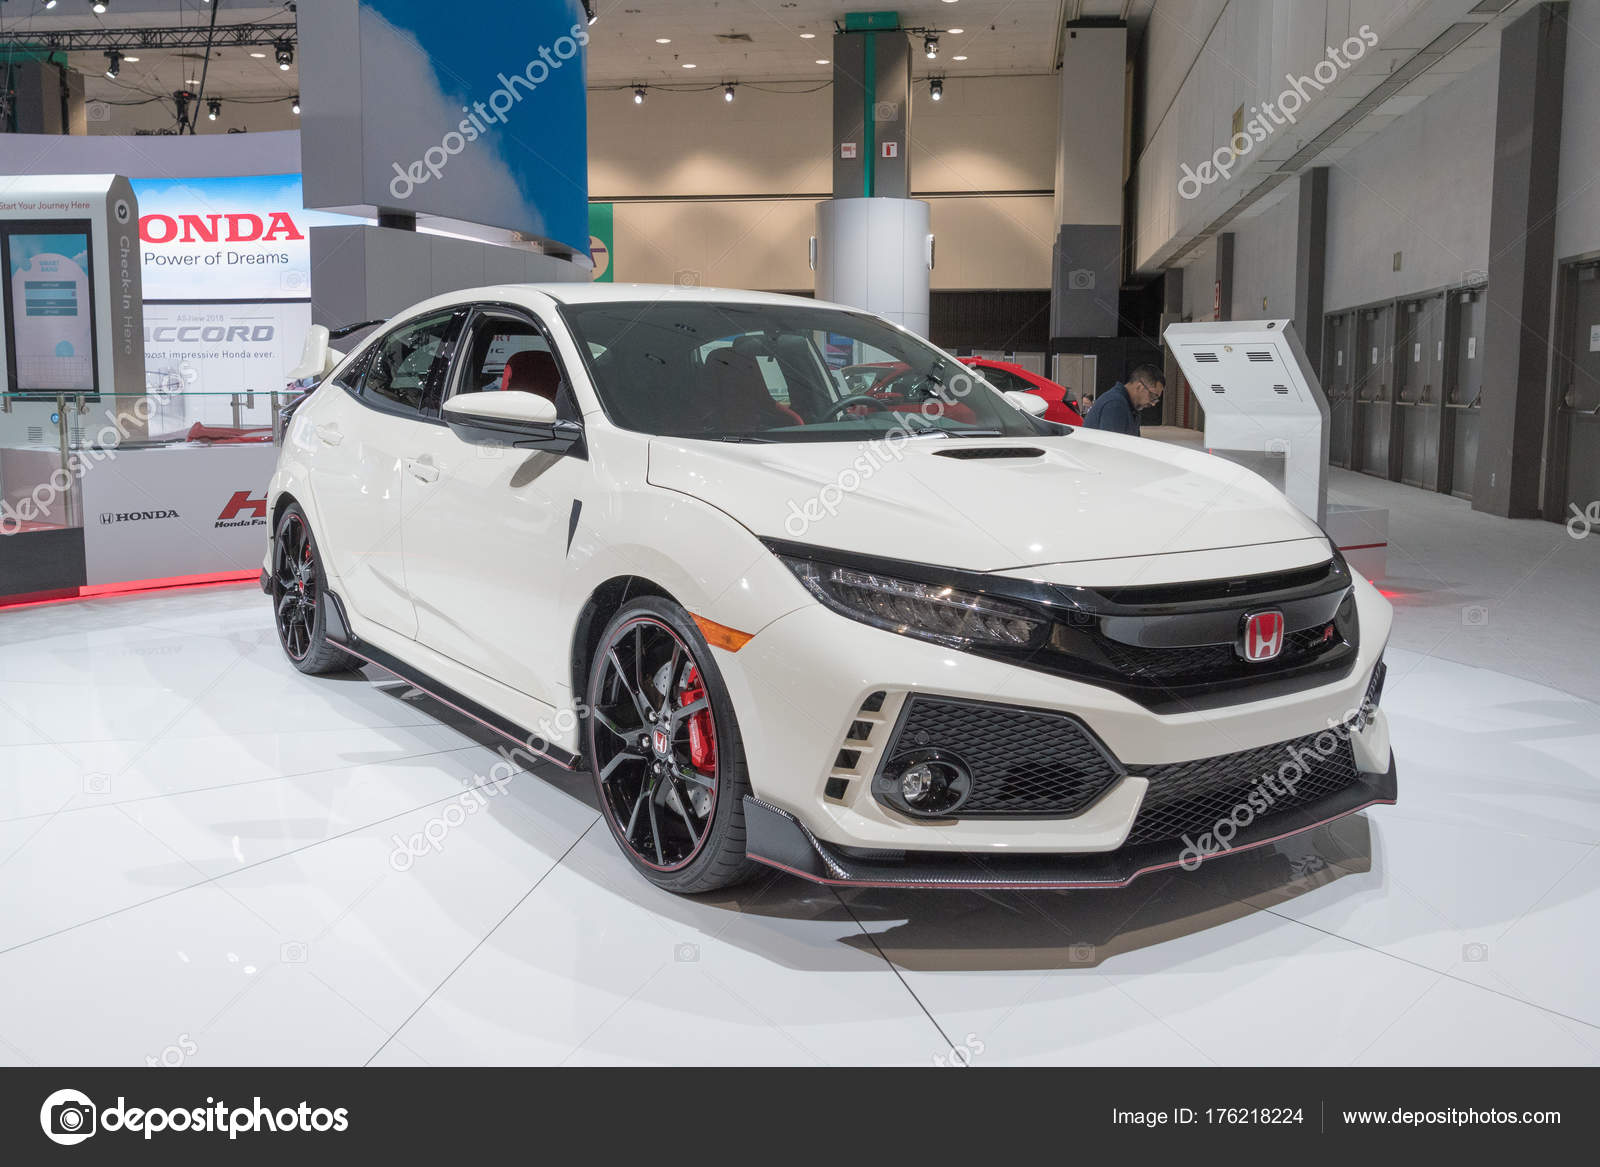 Honda Civic Hatchback On Display During LA Auto Show Stock - Civic center car show